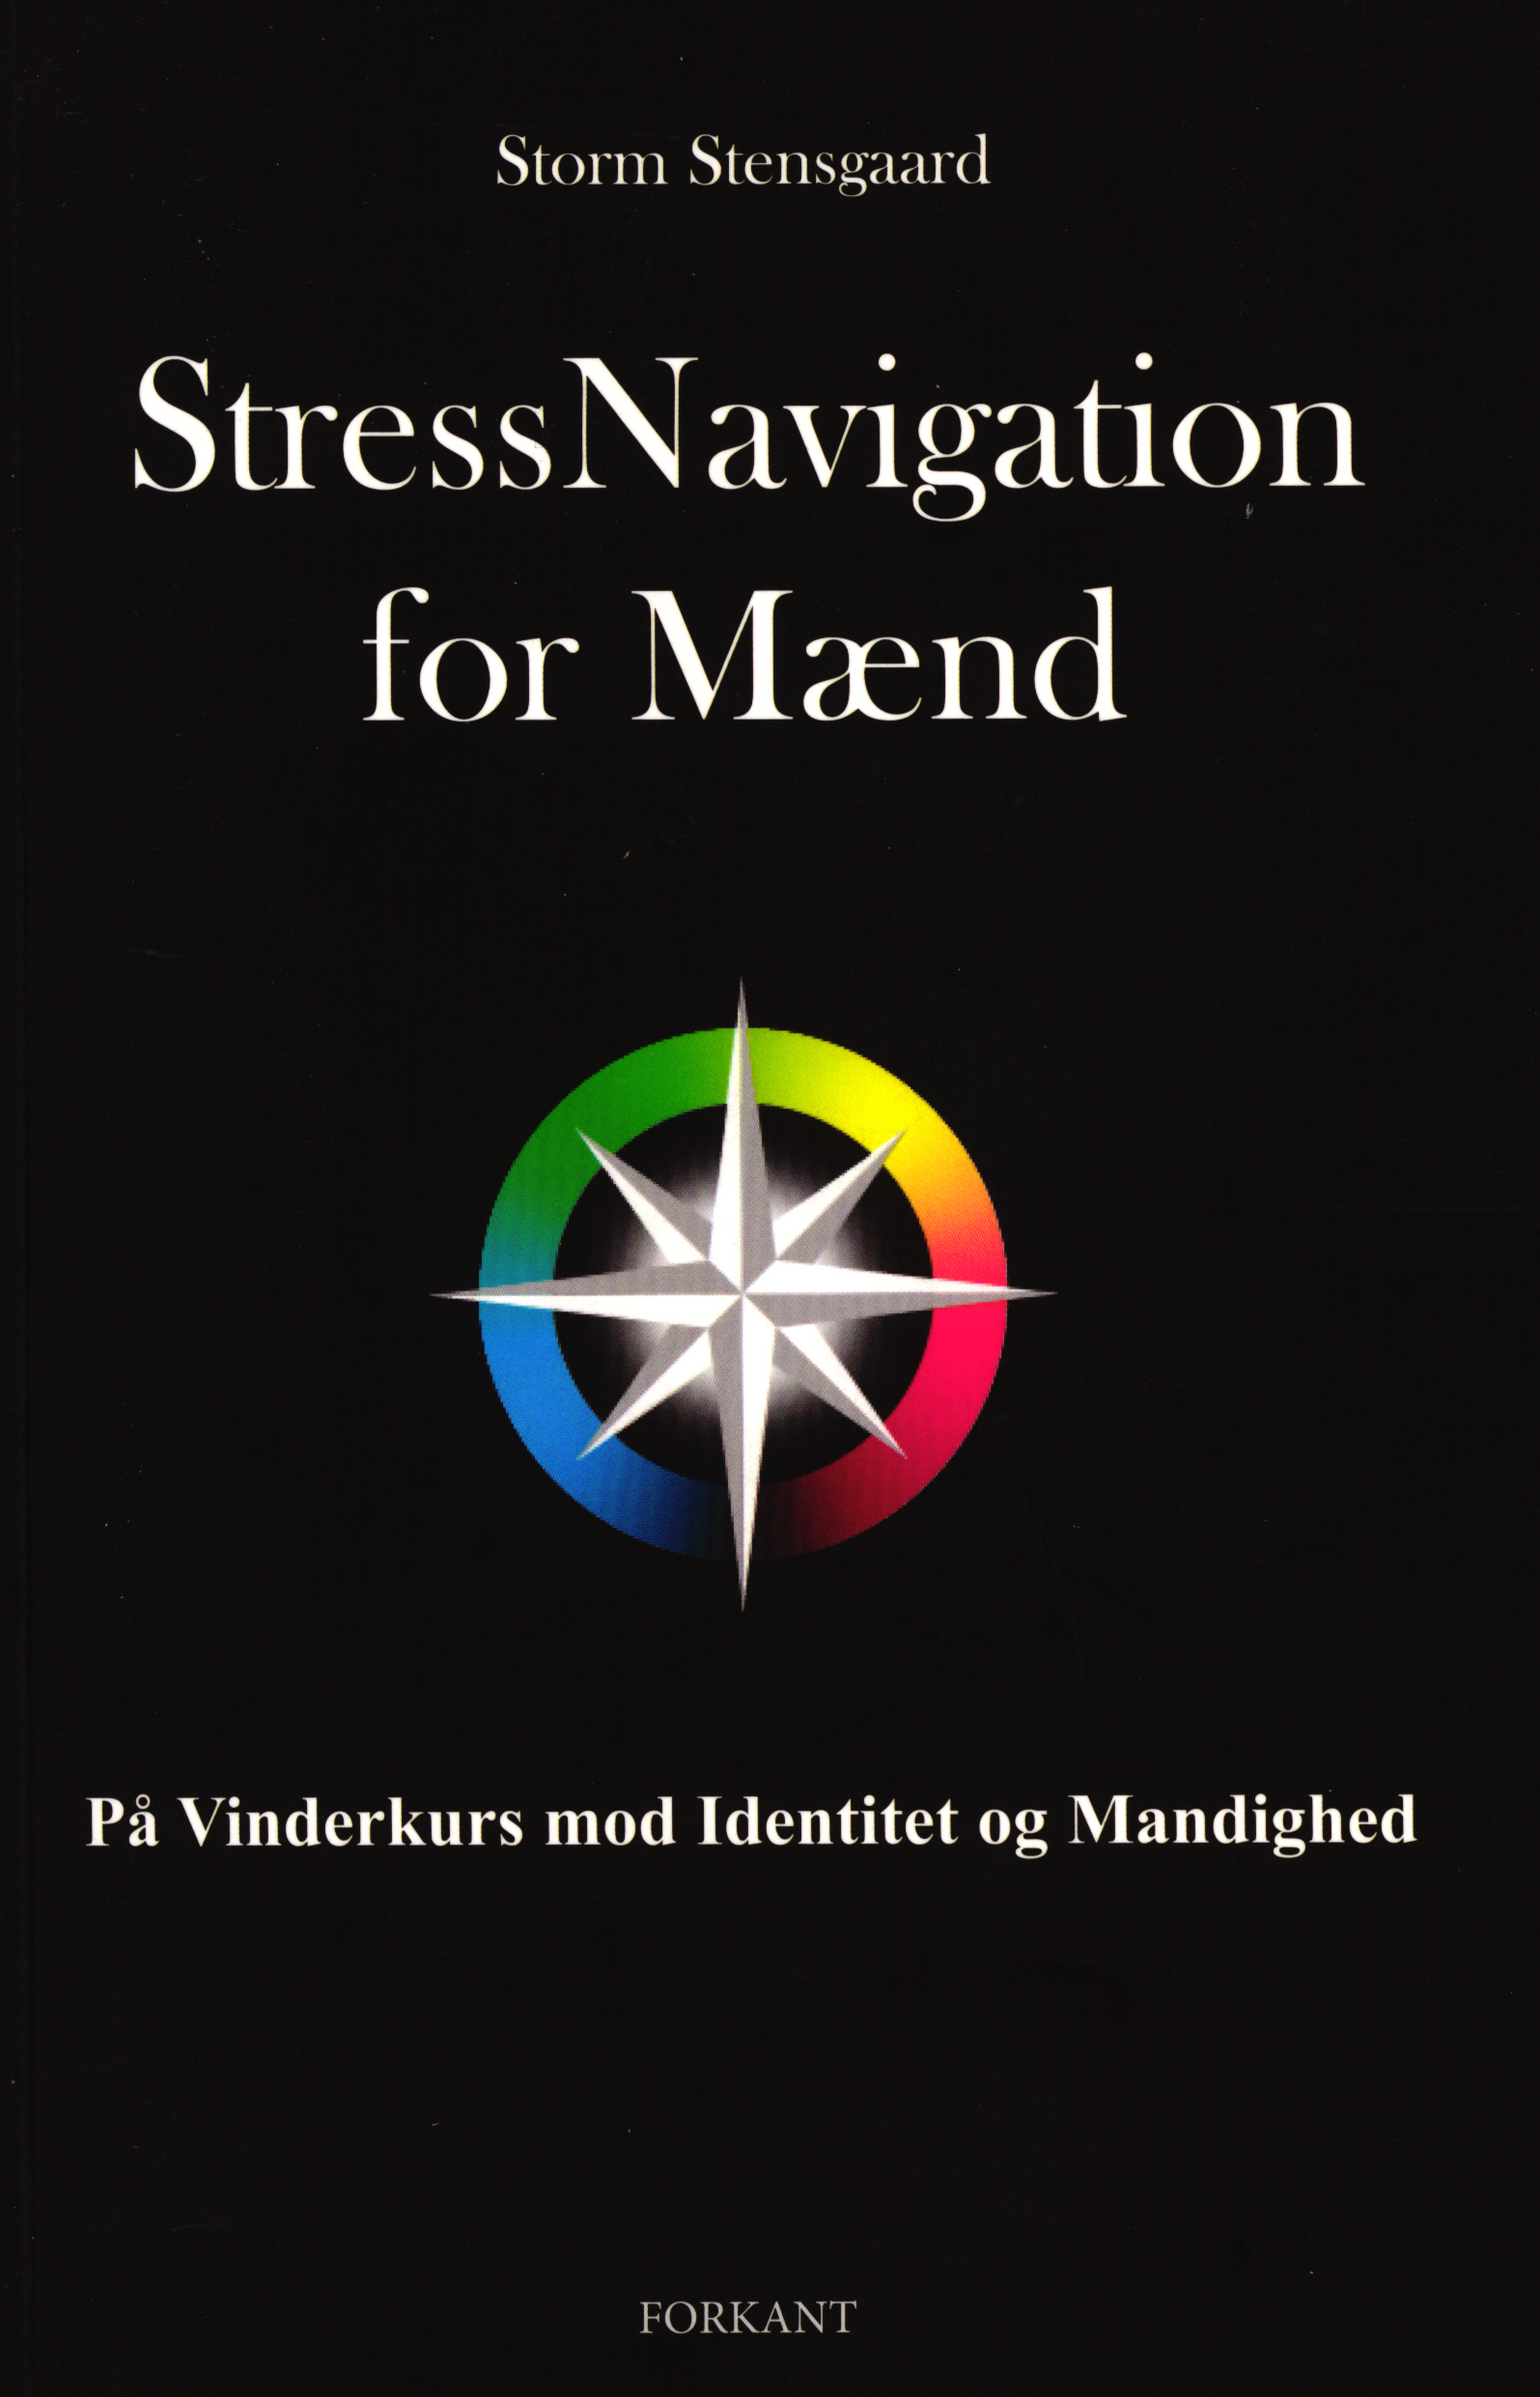 StressNavigation for mænd